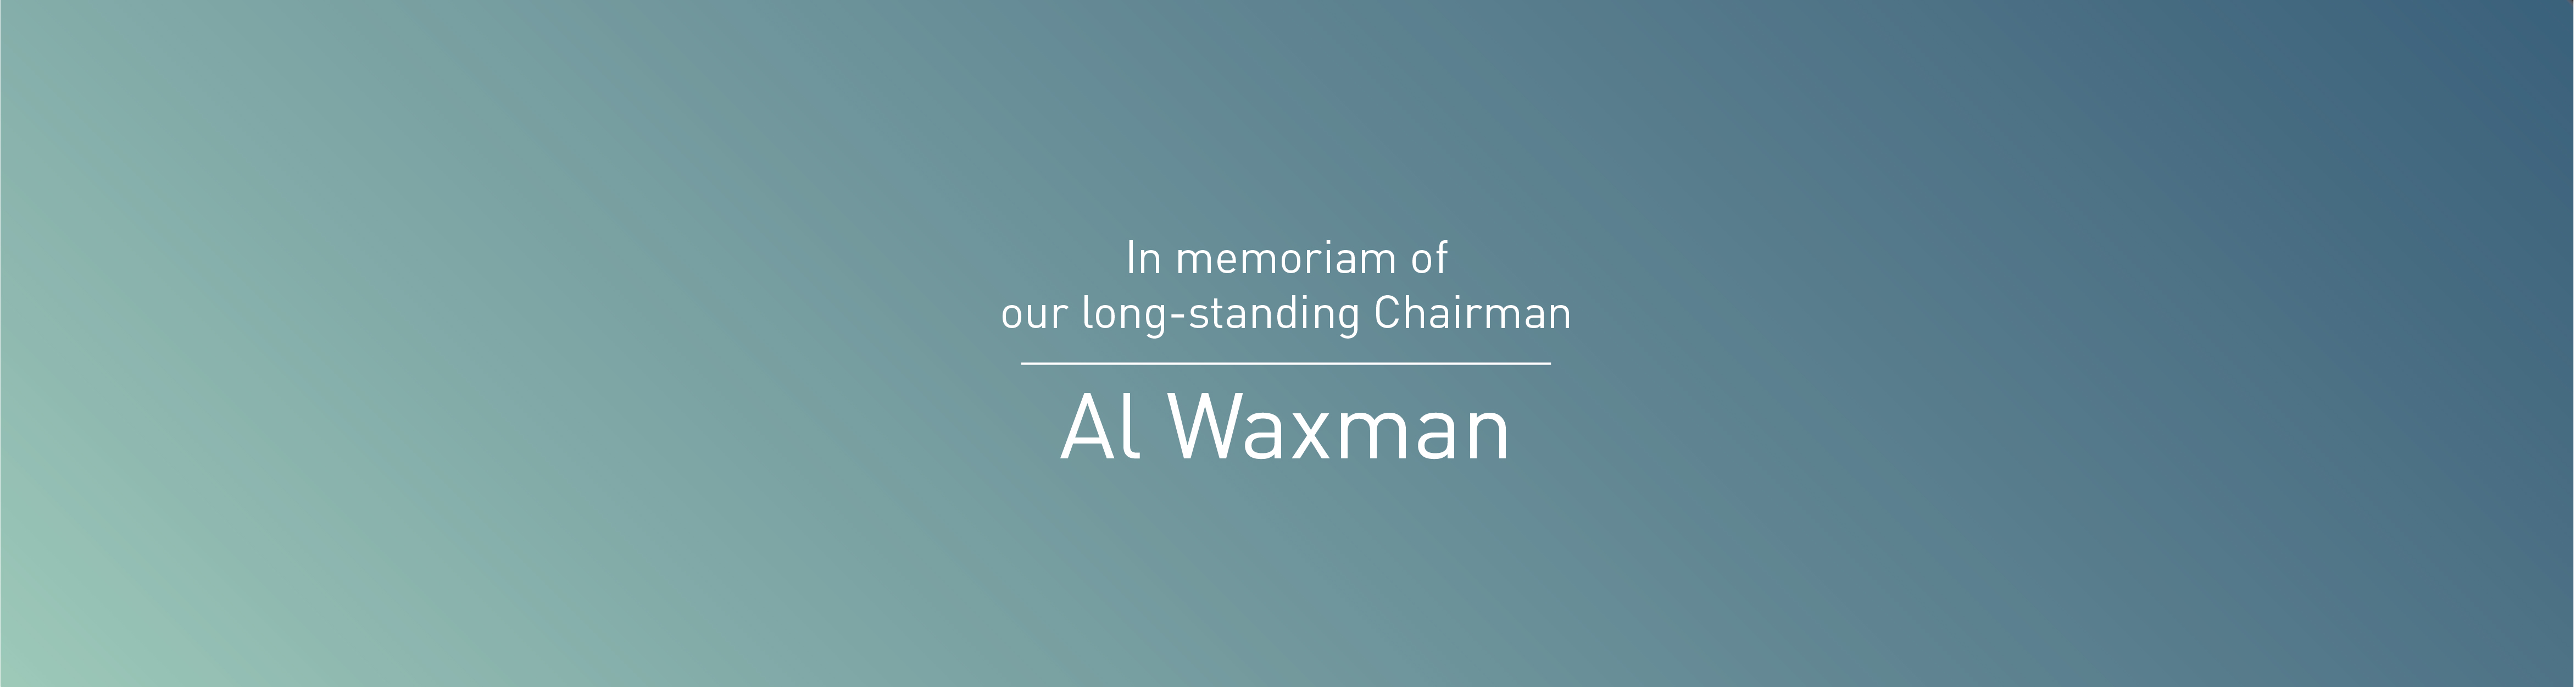 The entire HealthEdge community mourns the passing of our longtime Chairman, Al Waxman